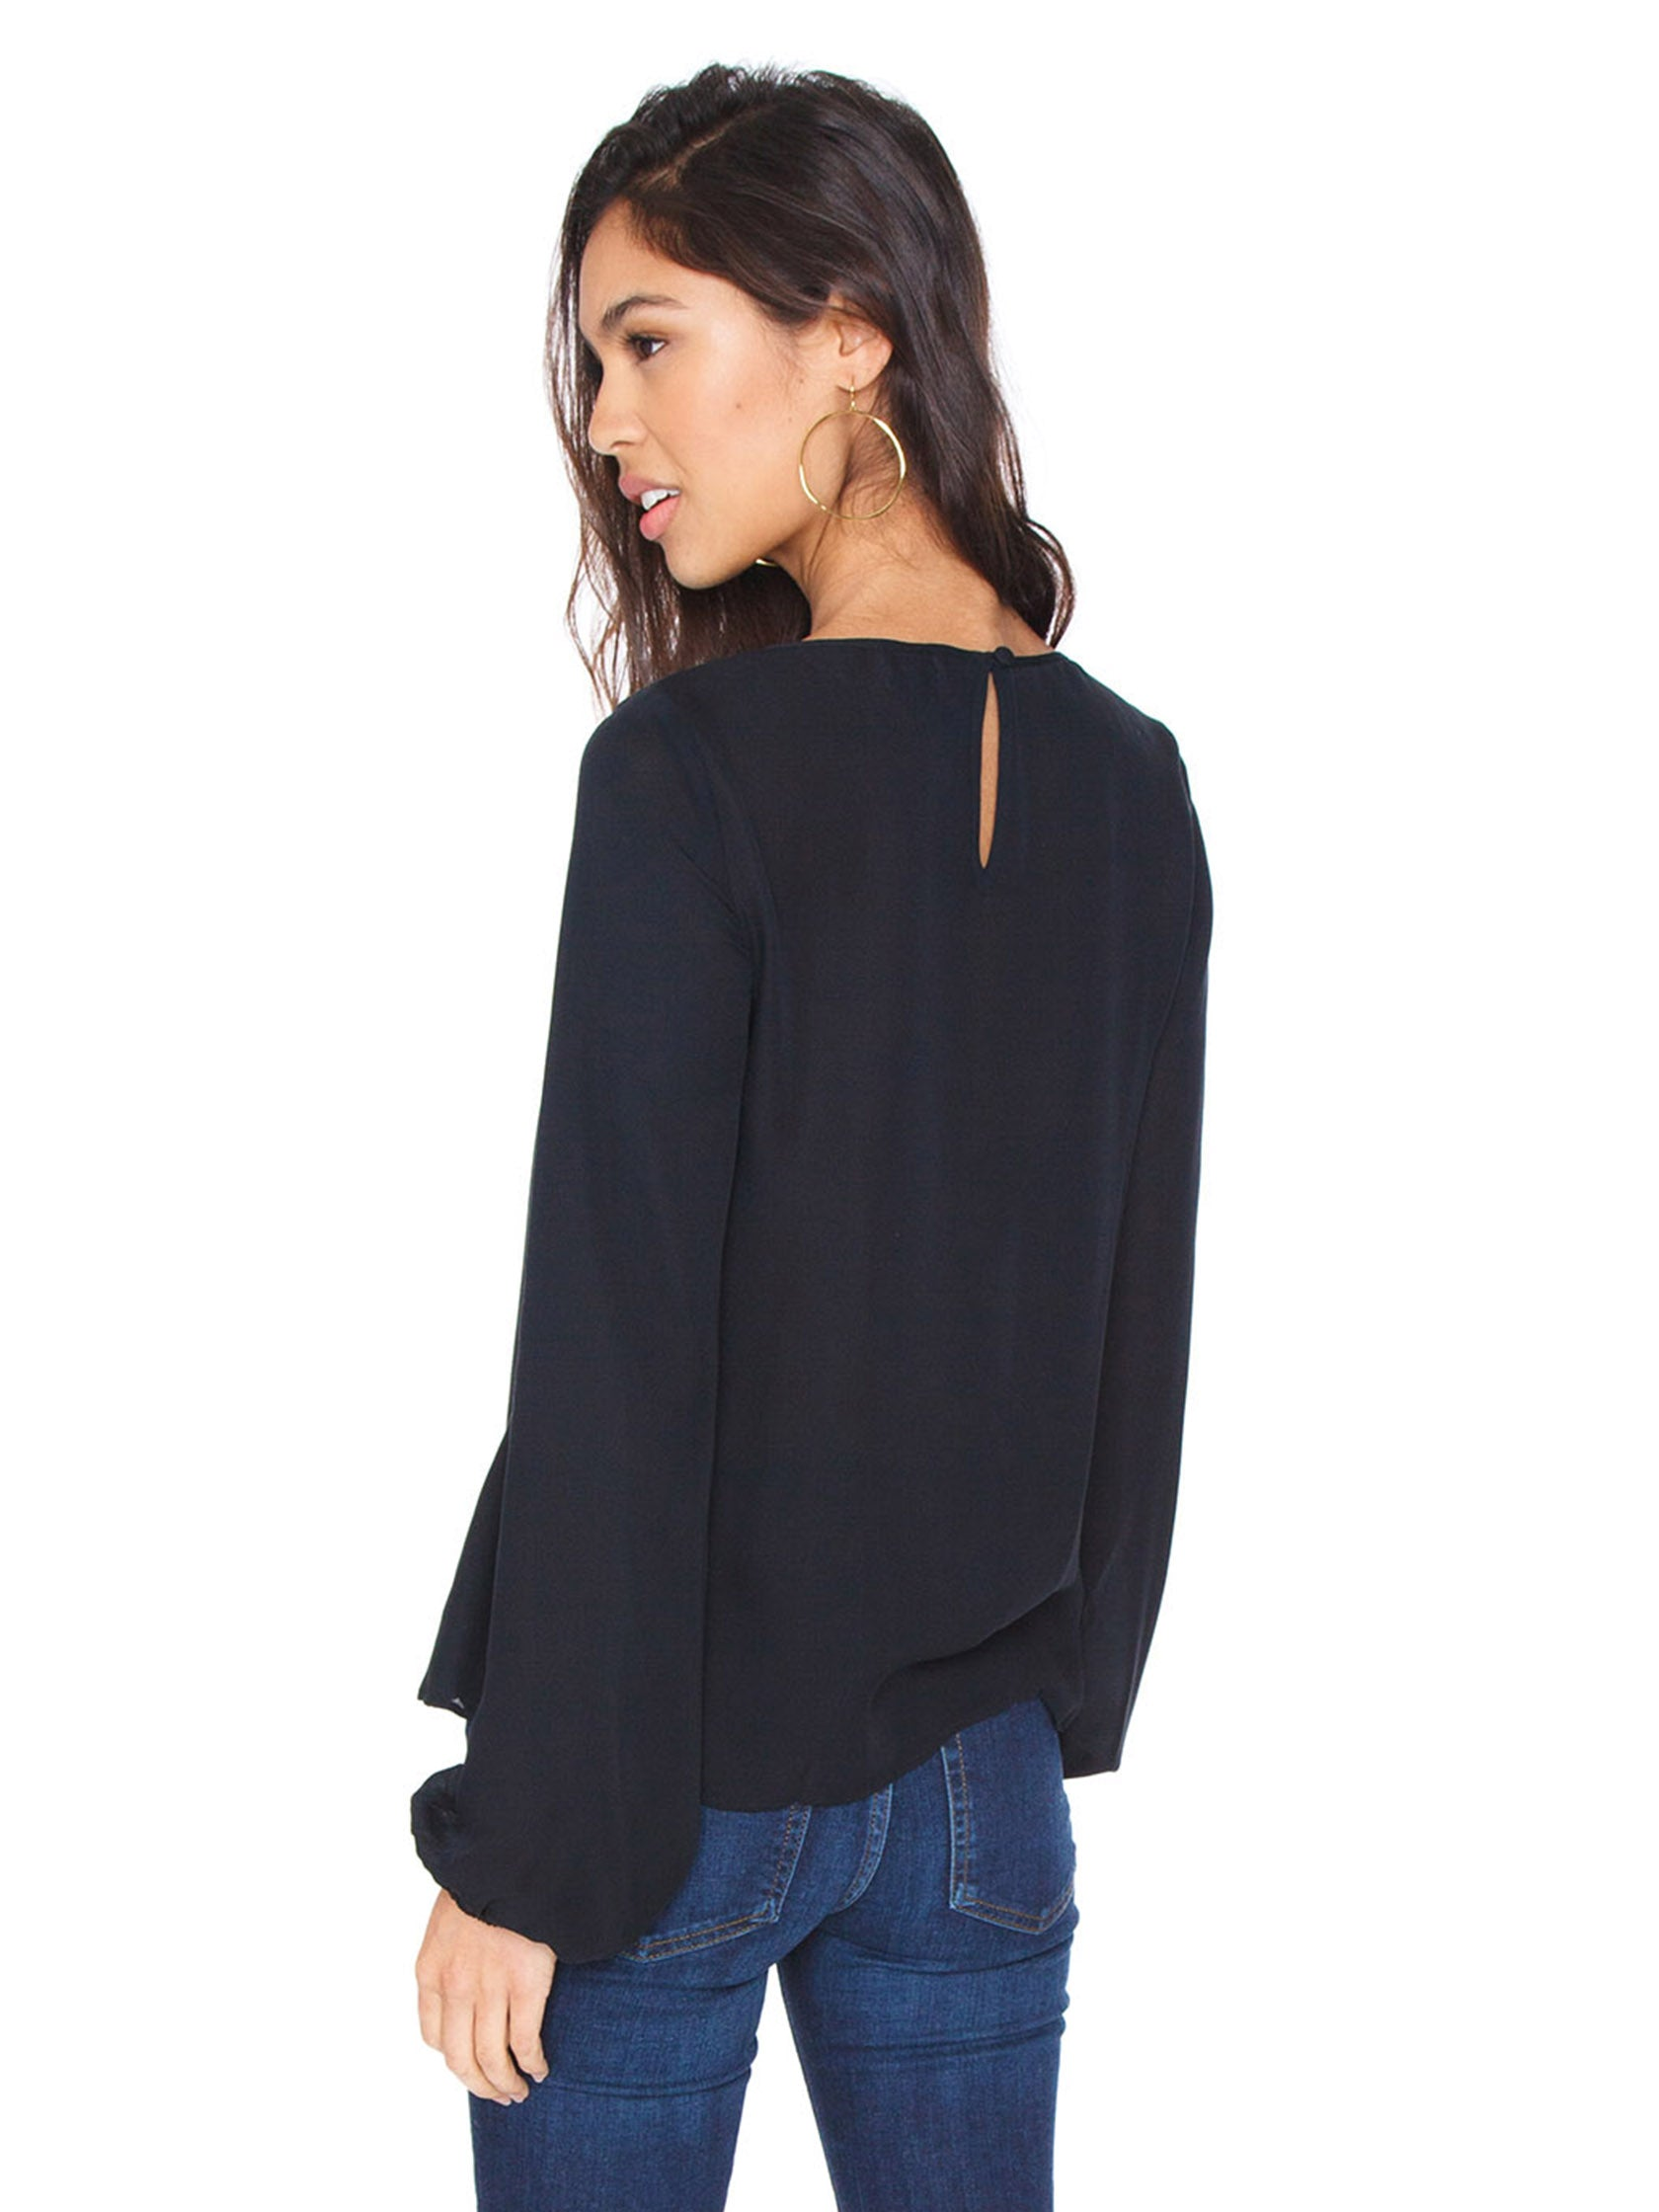 Women outfit in a top rental from Cami NYC called Tali Silk Blouse